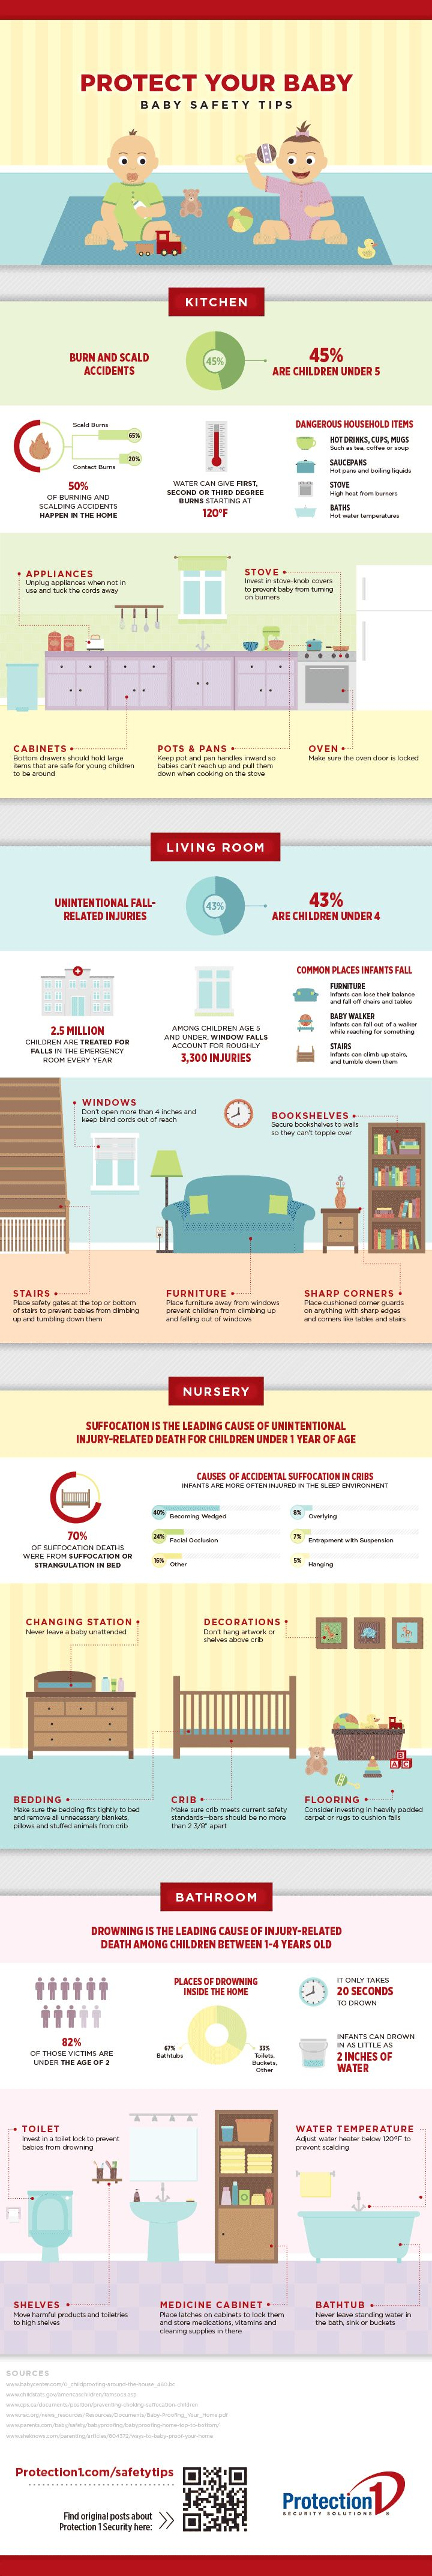 Child Safety Tips for Infant Safety Infographic (PDF)